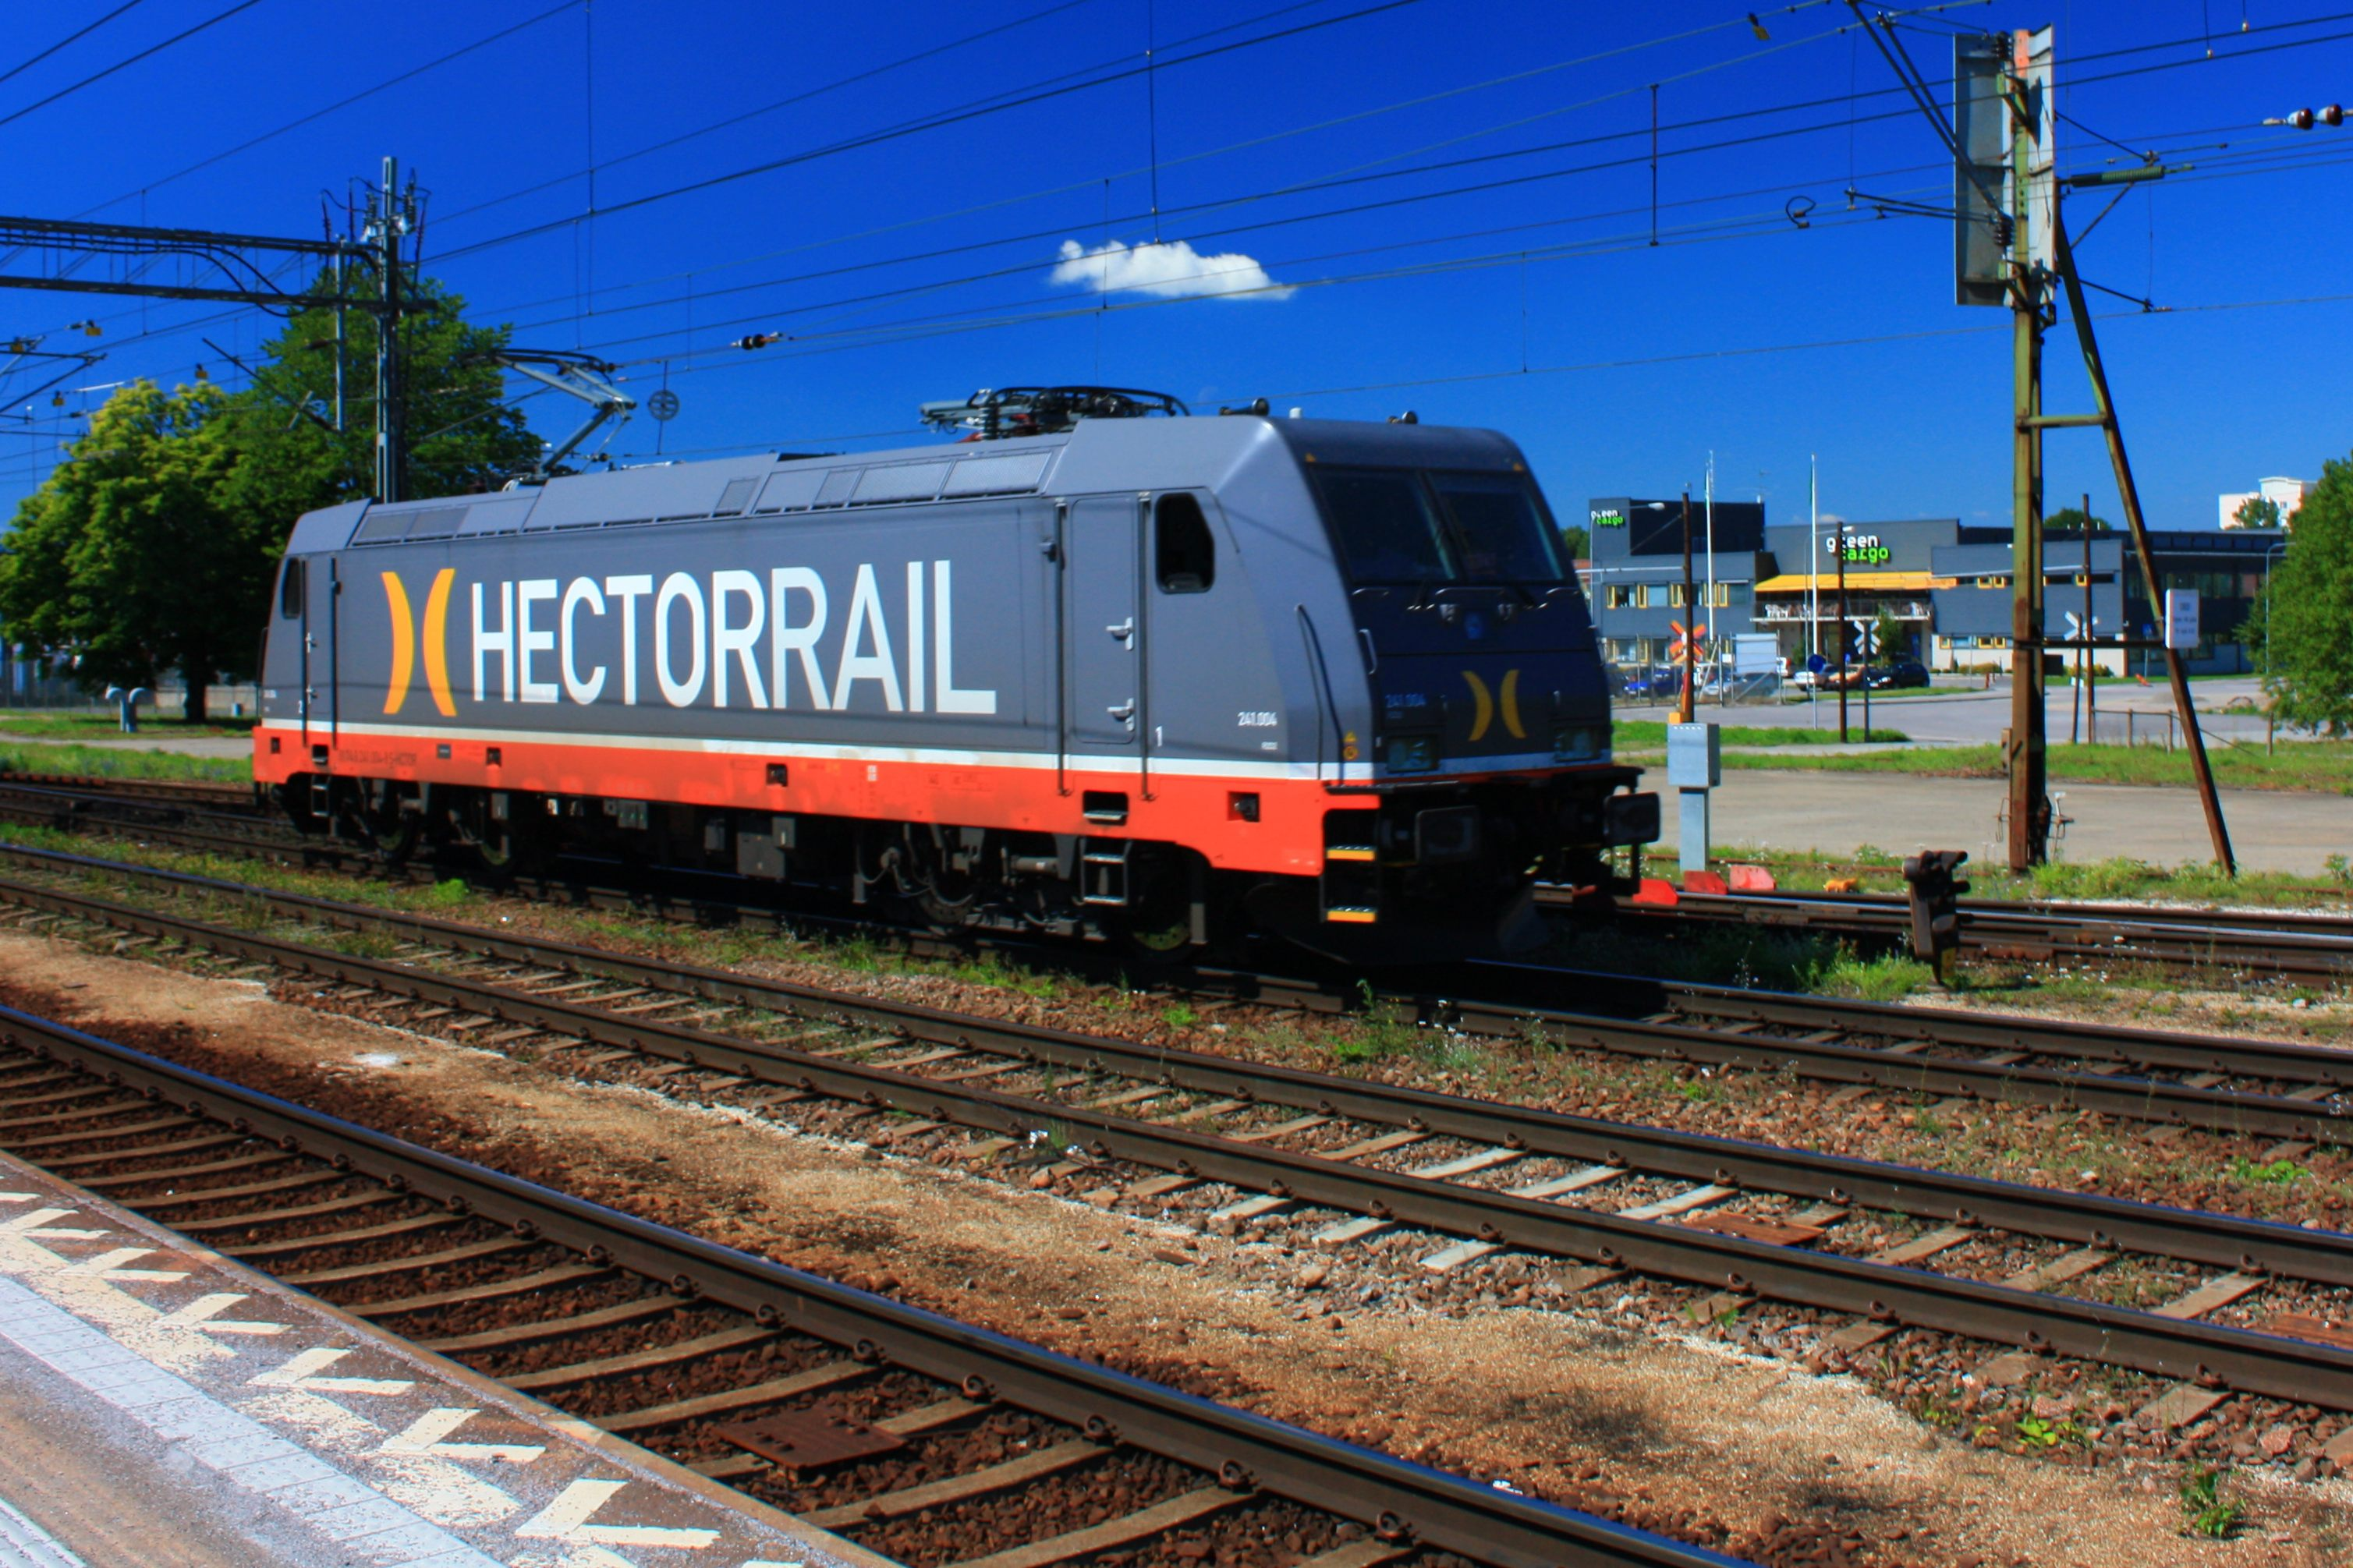 Hector Rail 241. Wikimedia Commons.